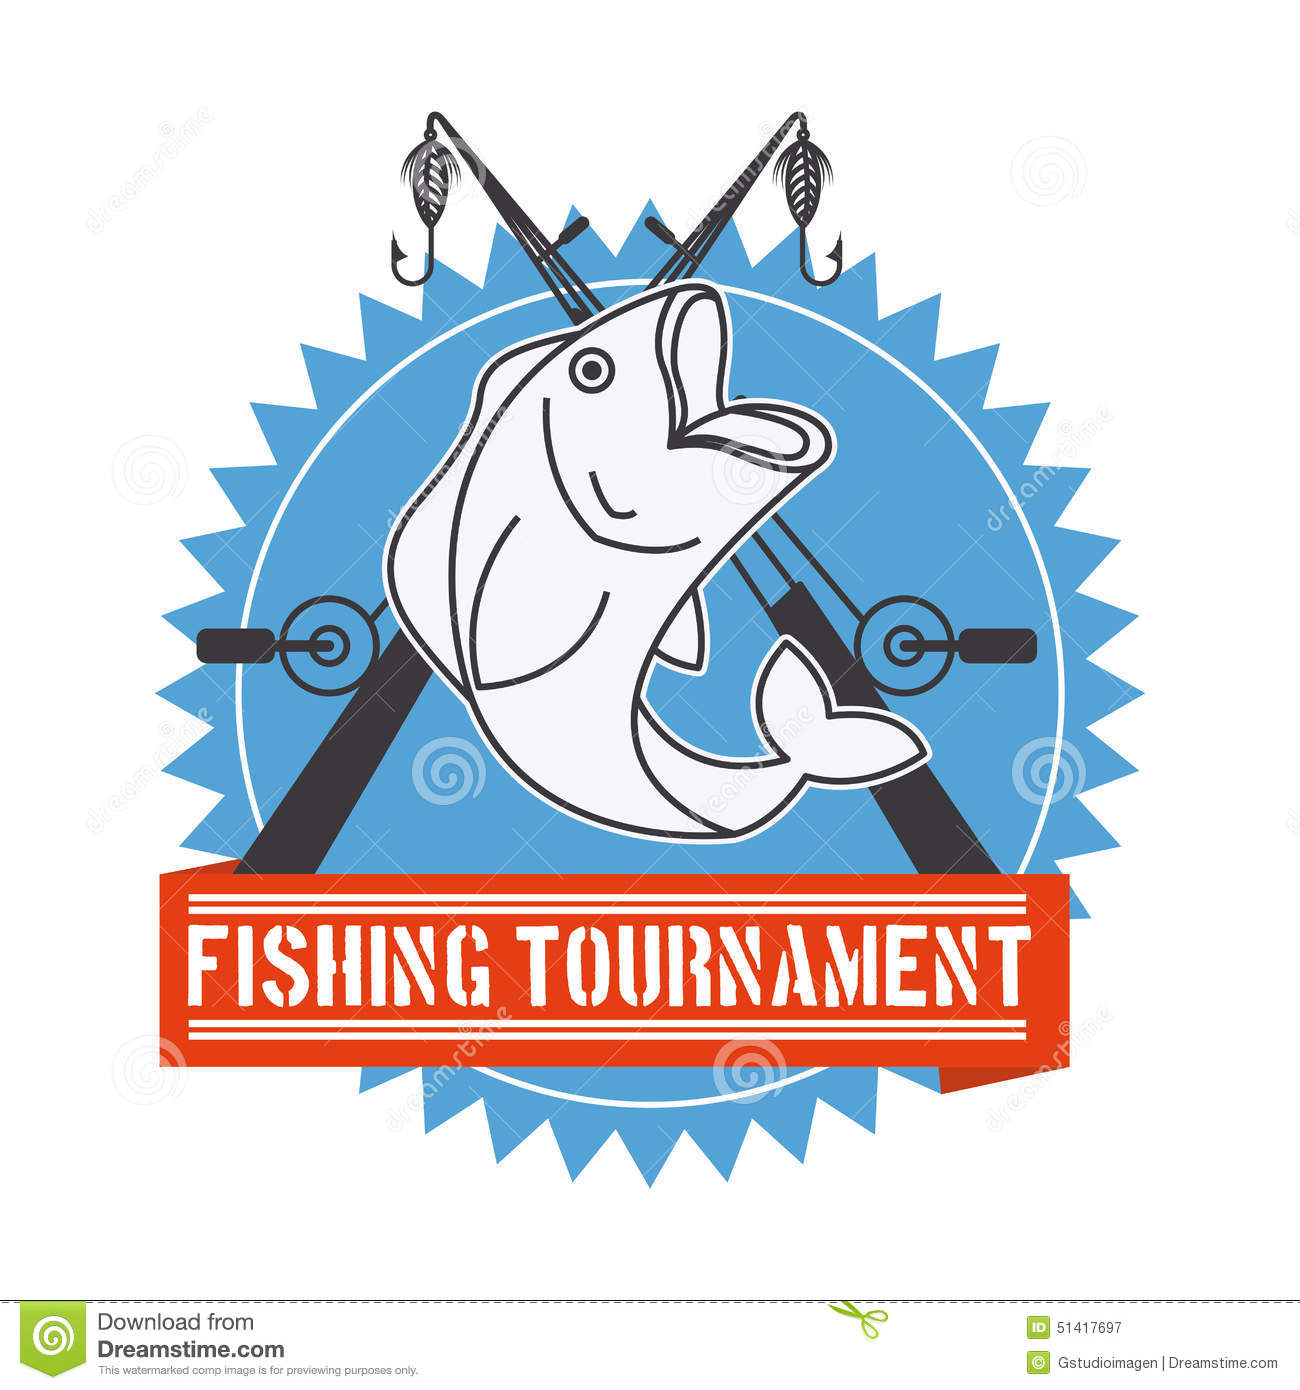 Boat pencil and in. Bass clipart fishing tournament